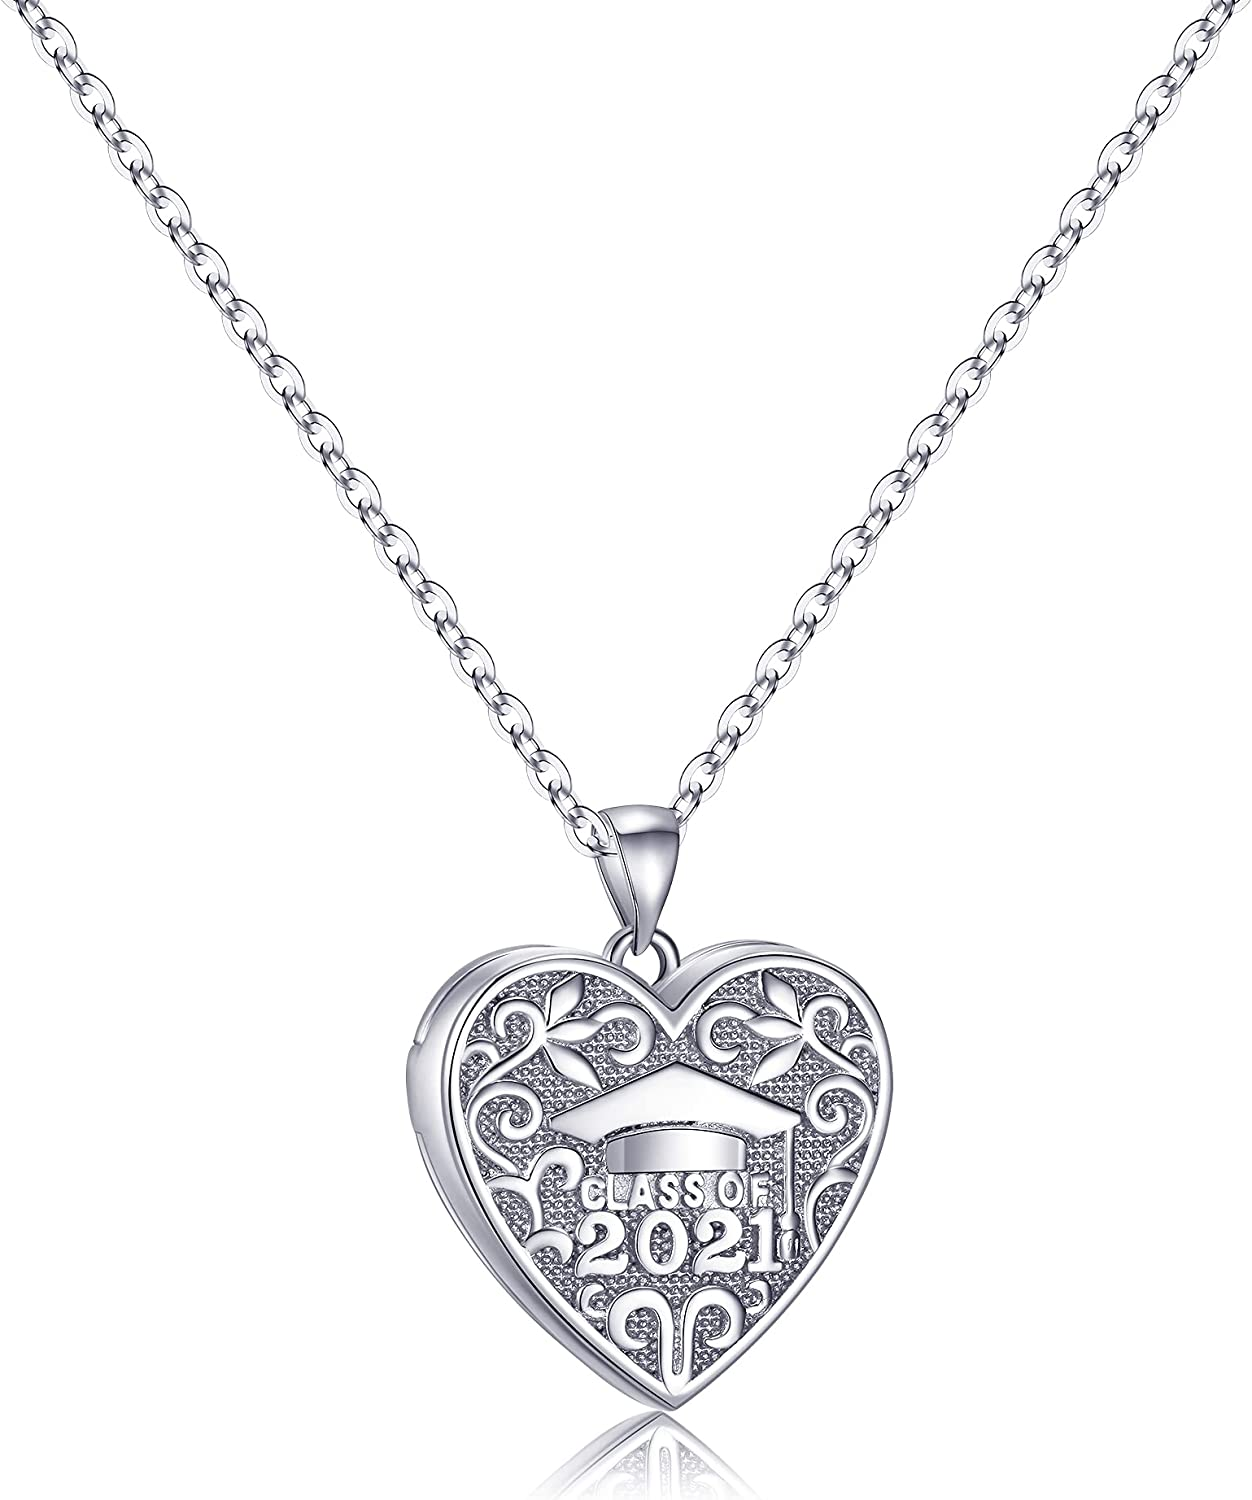 IEFWELL Locket Necklaces That Holds Pictures, Class of 2021 Gifts Heart Picture Necklaces for Women Girls Graduation Gifts for Her 2021